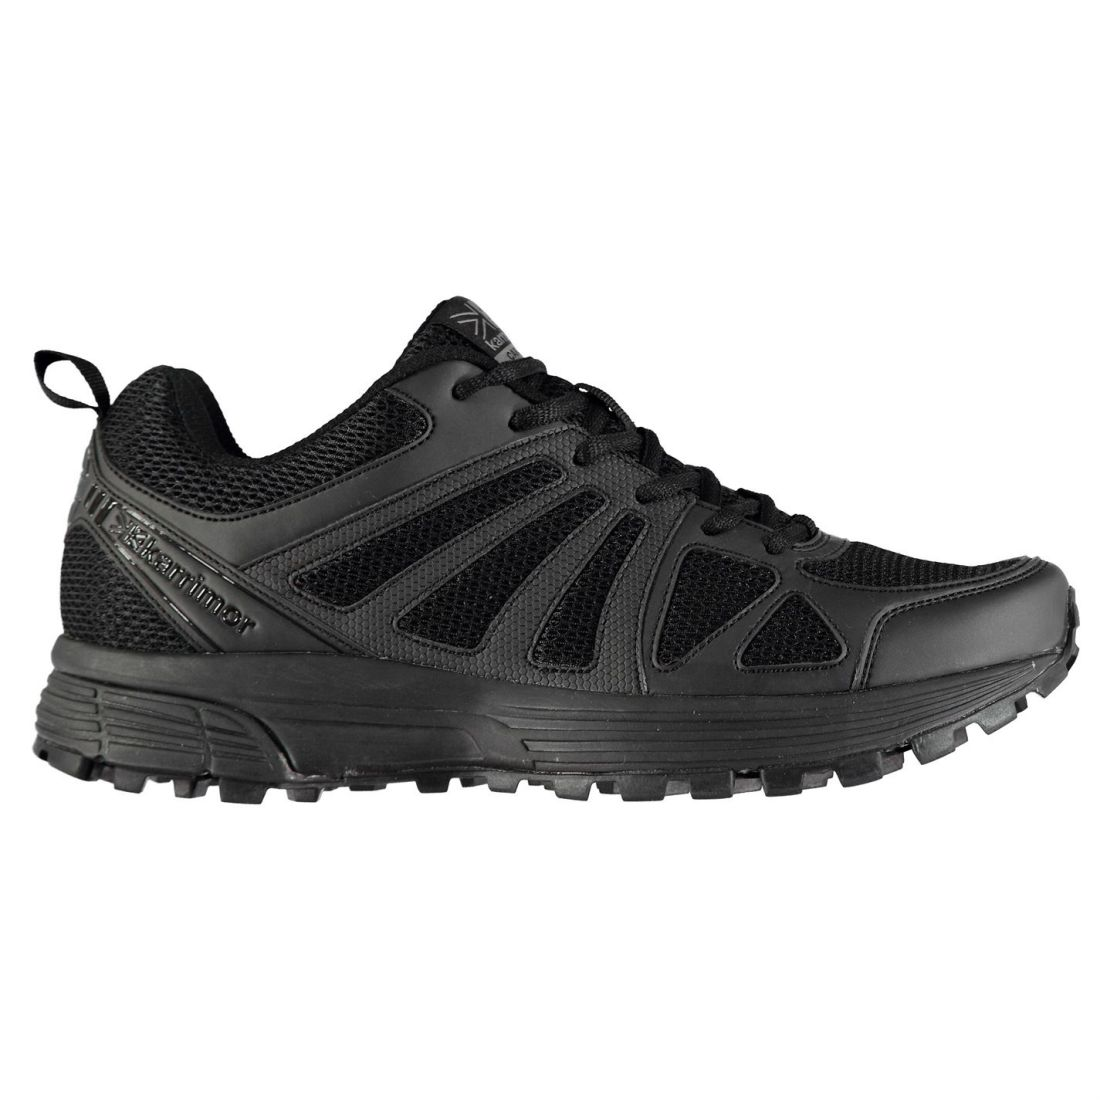 Karrimor-Men-Caracal-Trail-Running-Shoes-Trainers-Lace-Up-Breathable-Mesh-Panels thumbnail 2